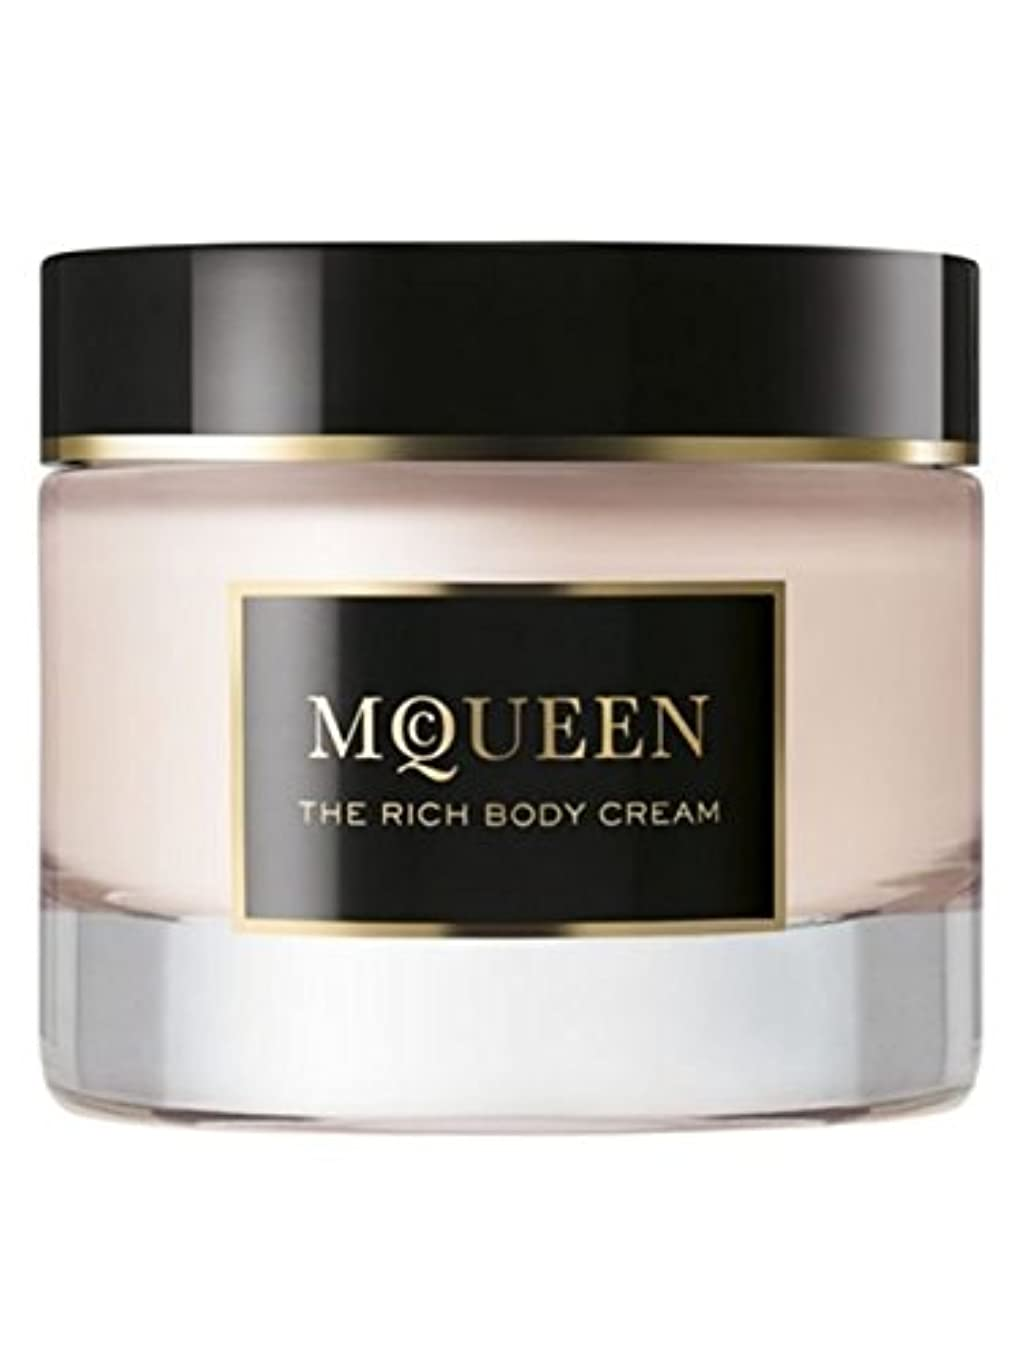 権利を与えるペフ反発McQueen (マクイーン) 1.6 oz (50ml) Body Cream by Alexander McQueen for Women